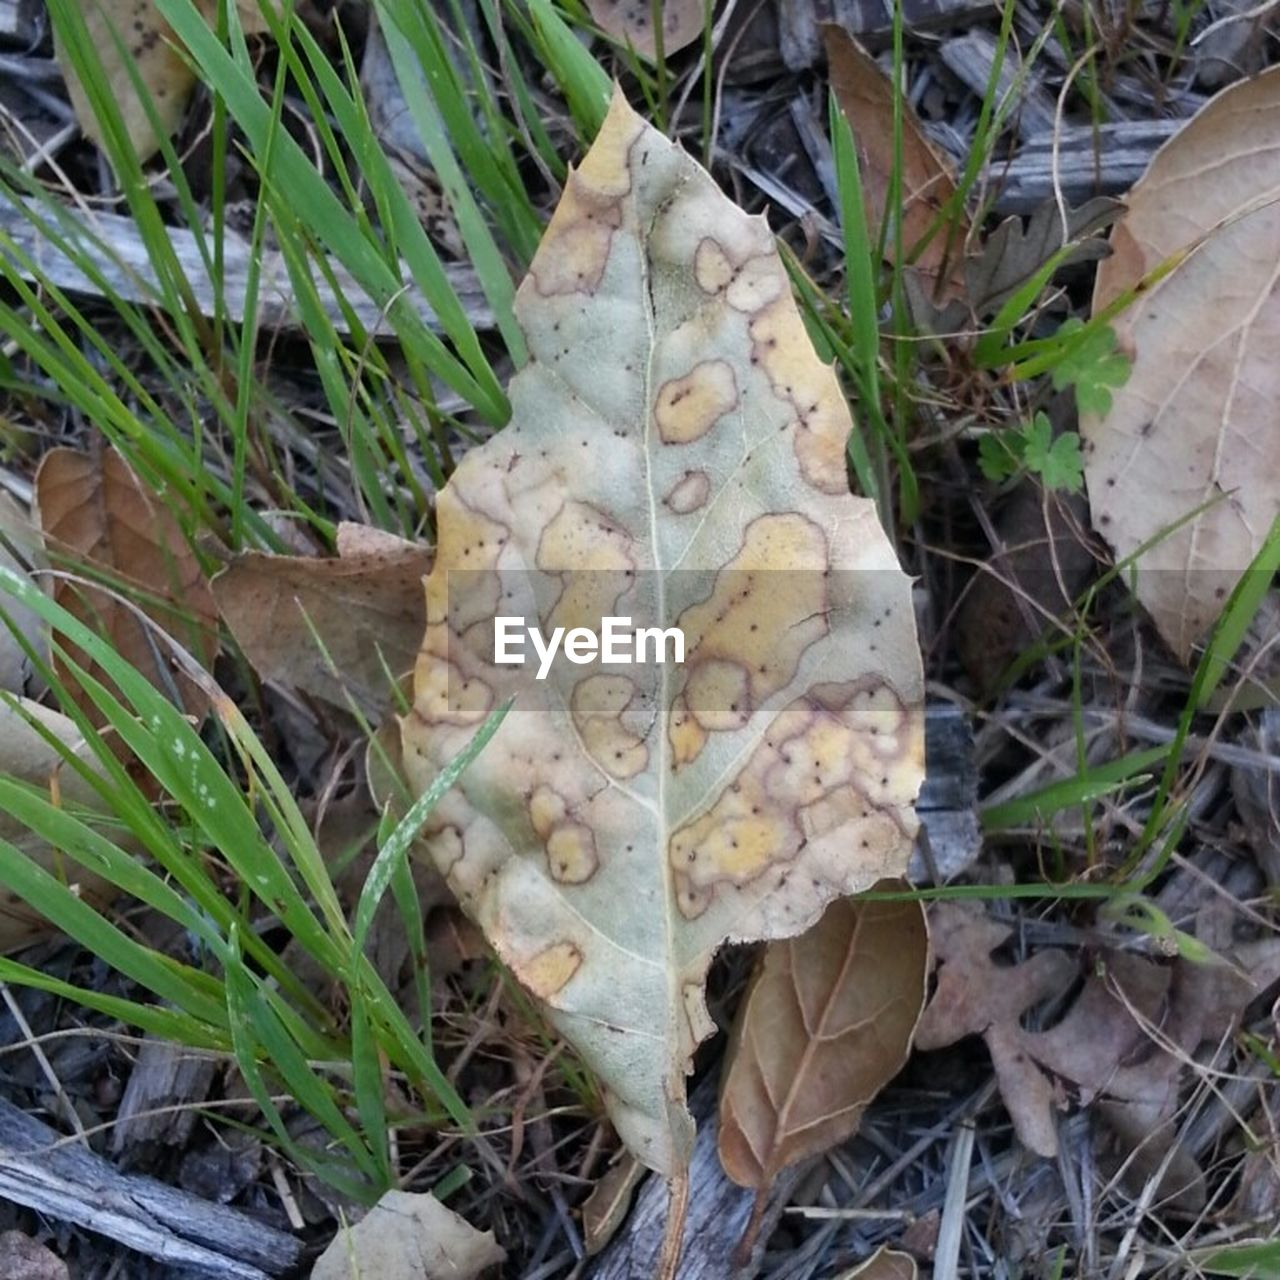 leaf, dry, day, high angle view, autumn, outdoors, change, fallen, nature, fragility, no people, close-up